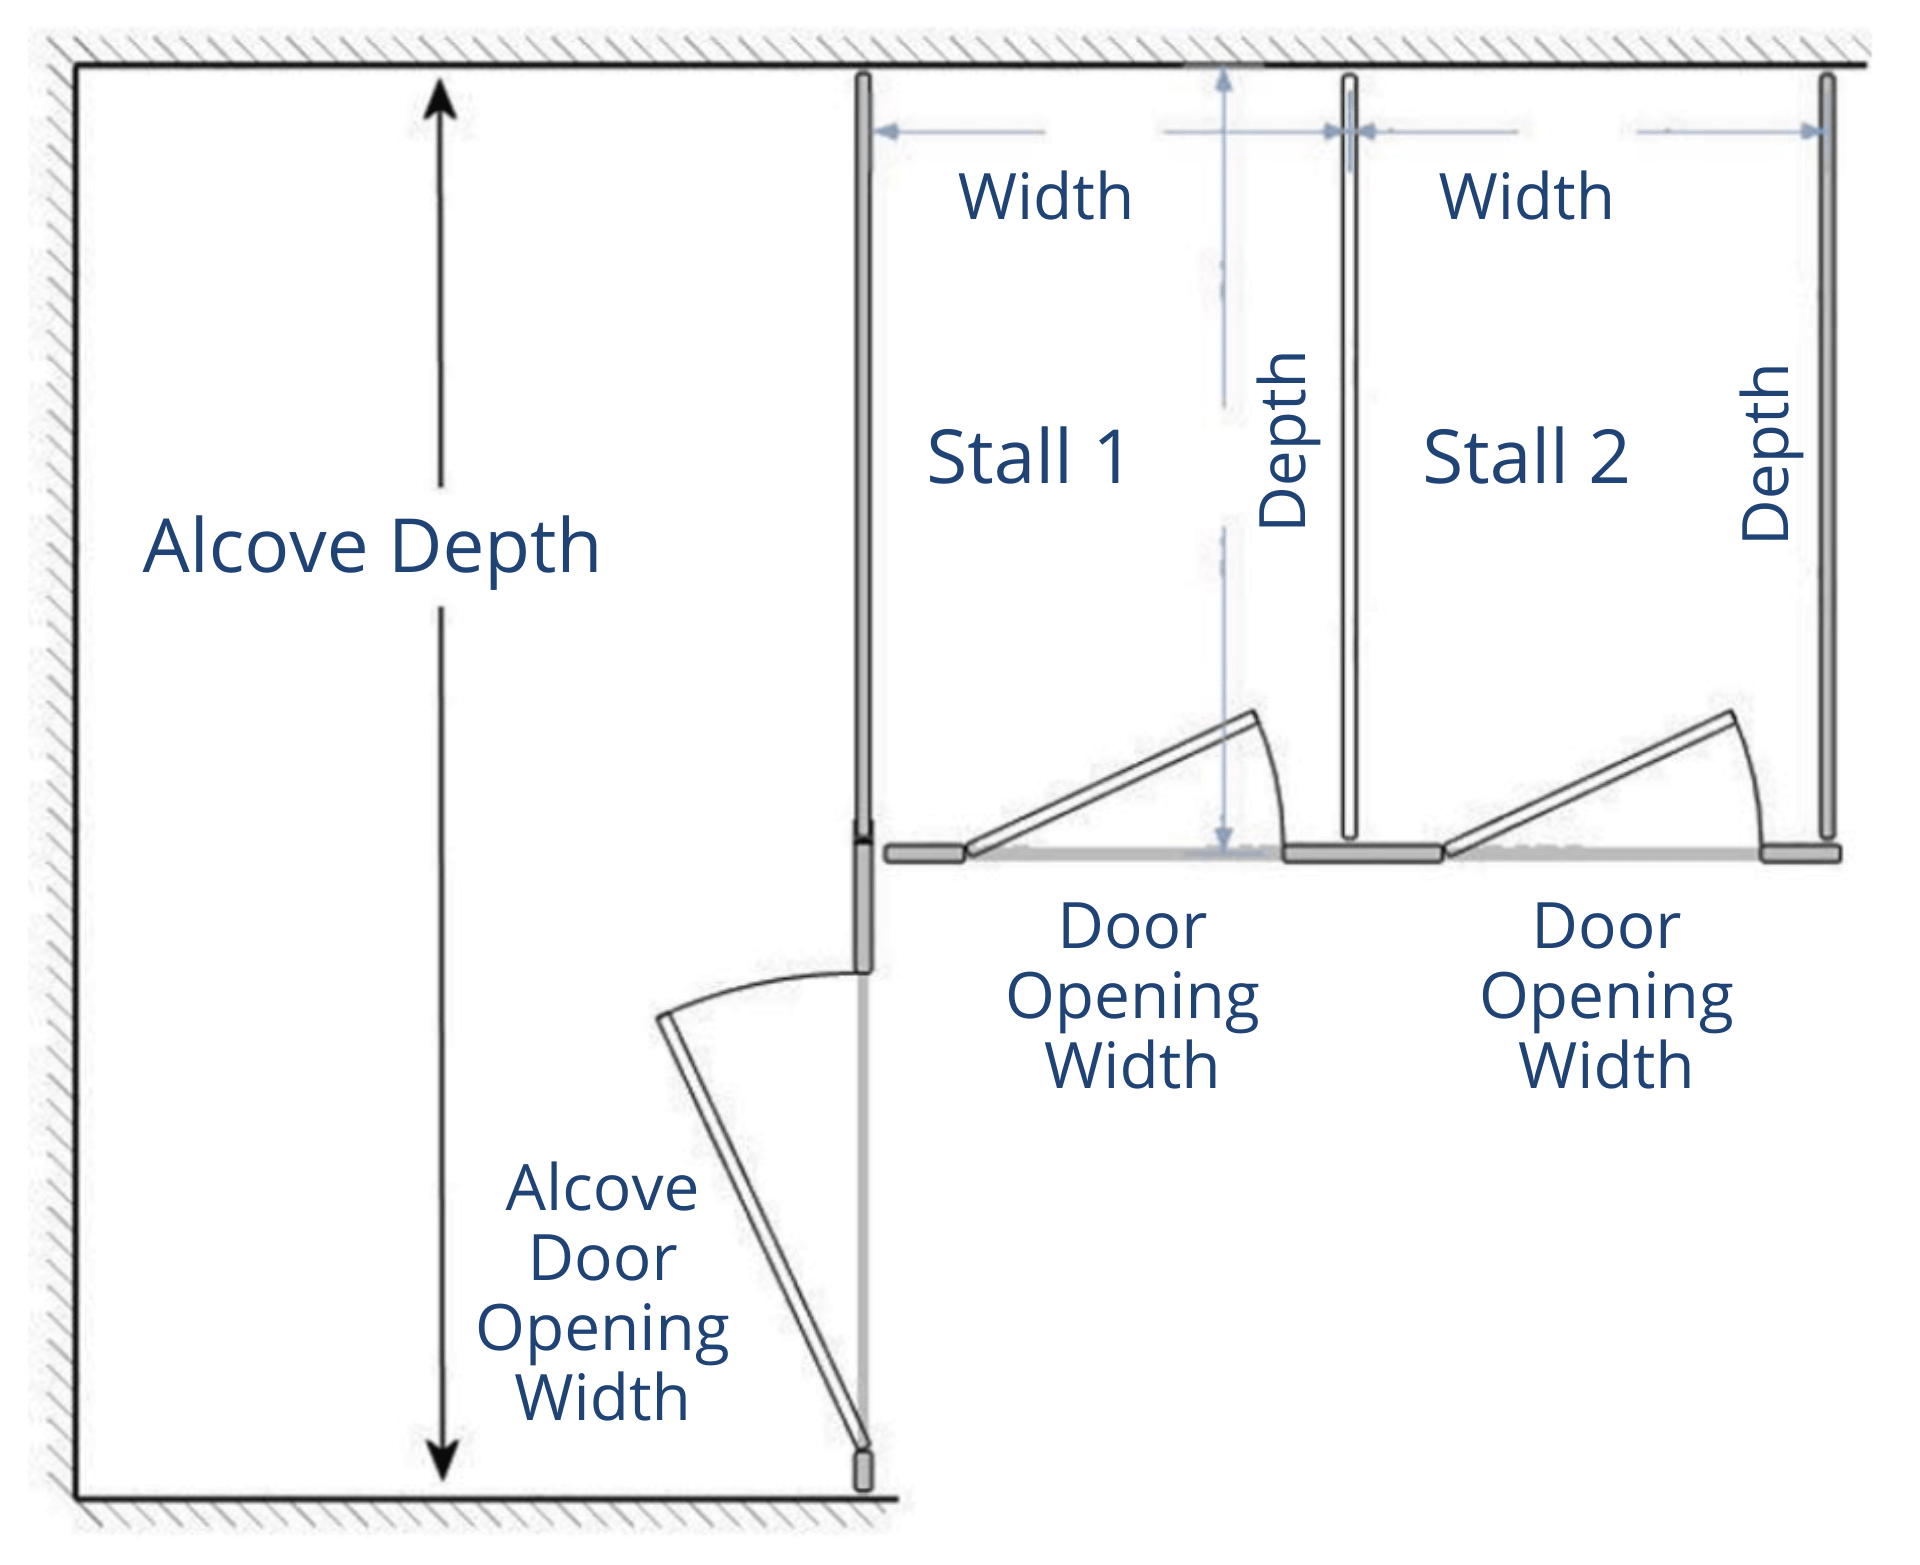 Alcove plus 2 Diagram